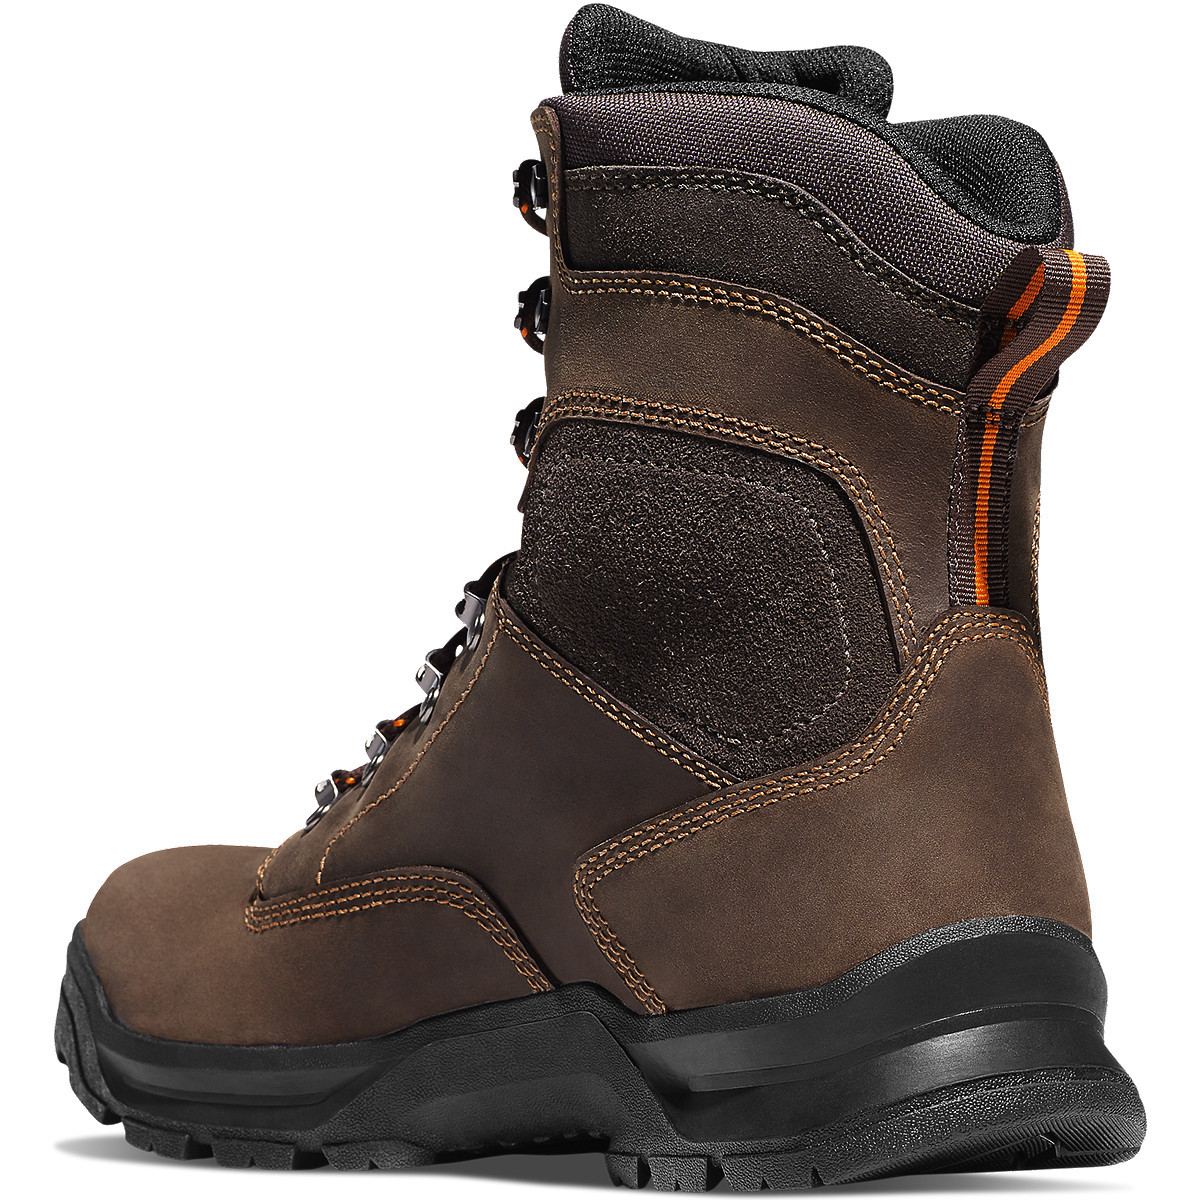 Danner Men S Crafter Waterproof Composite Toe Work Boots